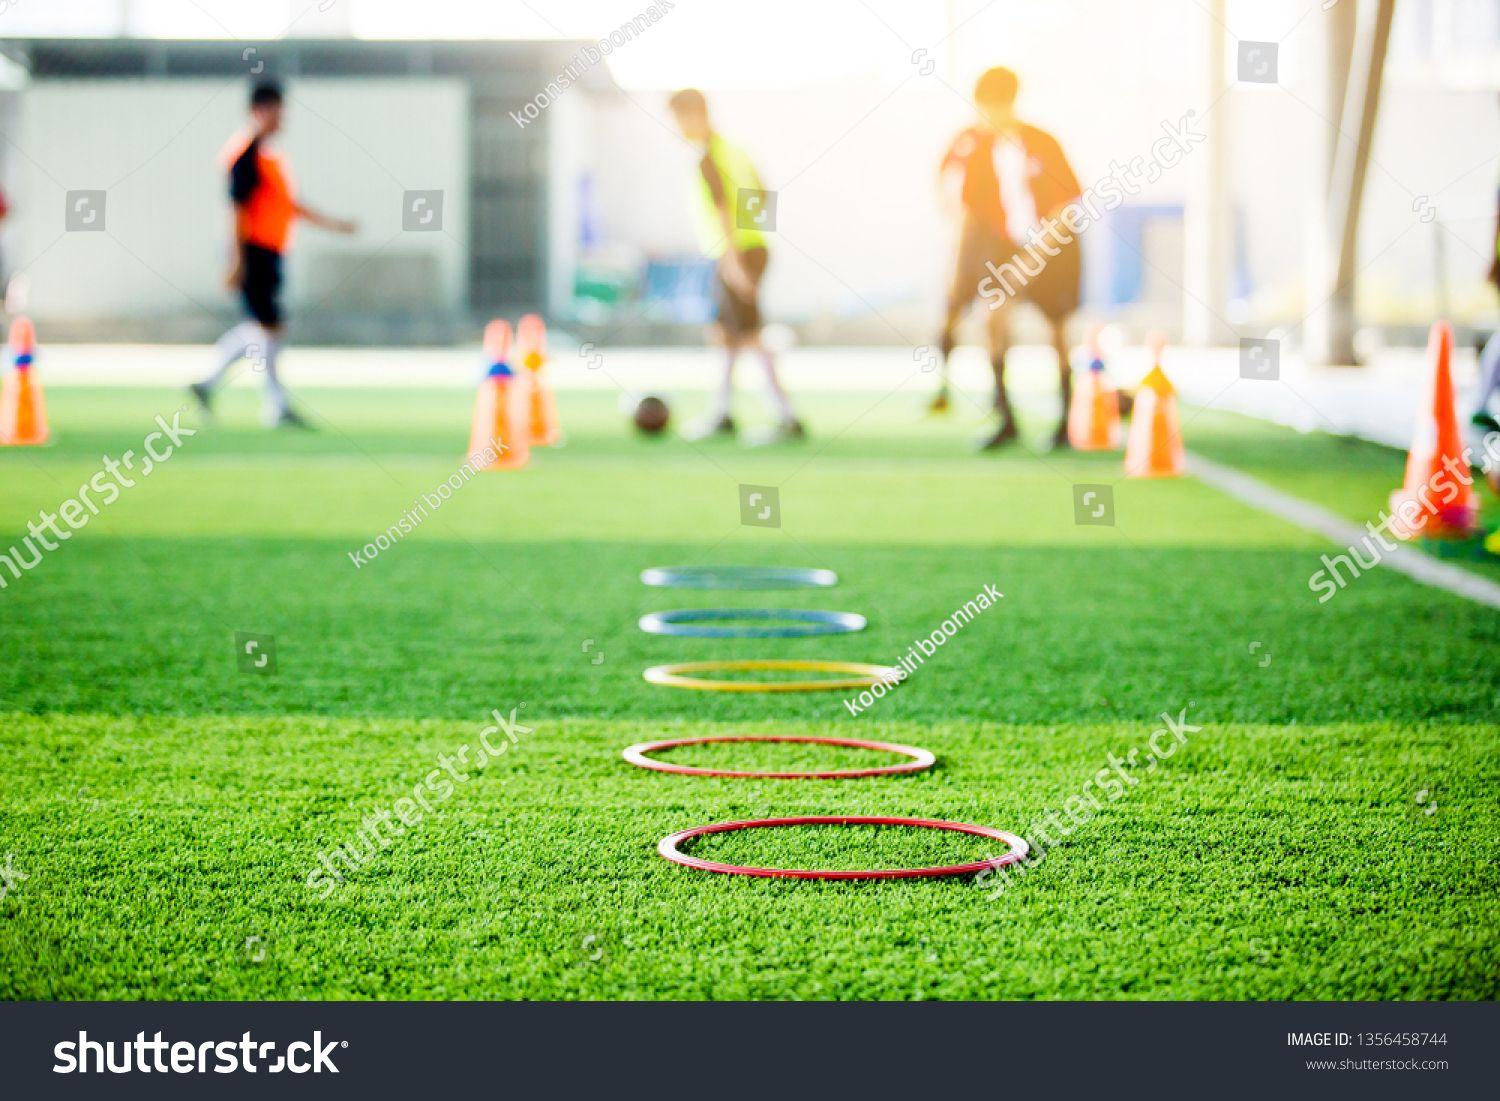 Selective Focus To Ring Ladder Marker And Cone Are Soccer Training Equipment On Green Artificial T Soccer Training Equipment Soccer Training Training Equipment